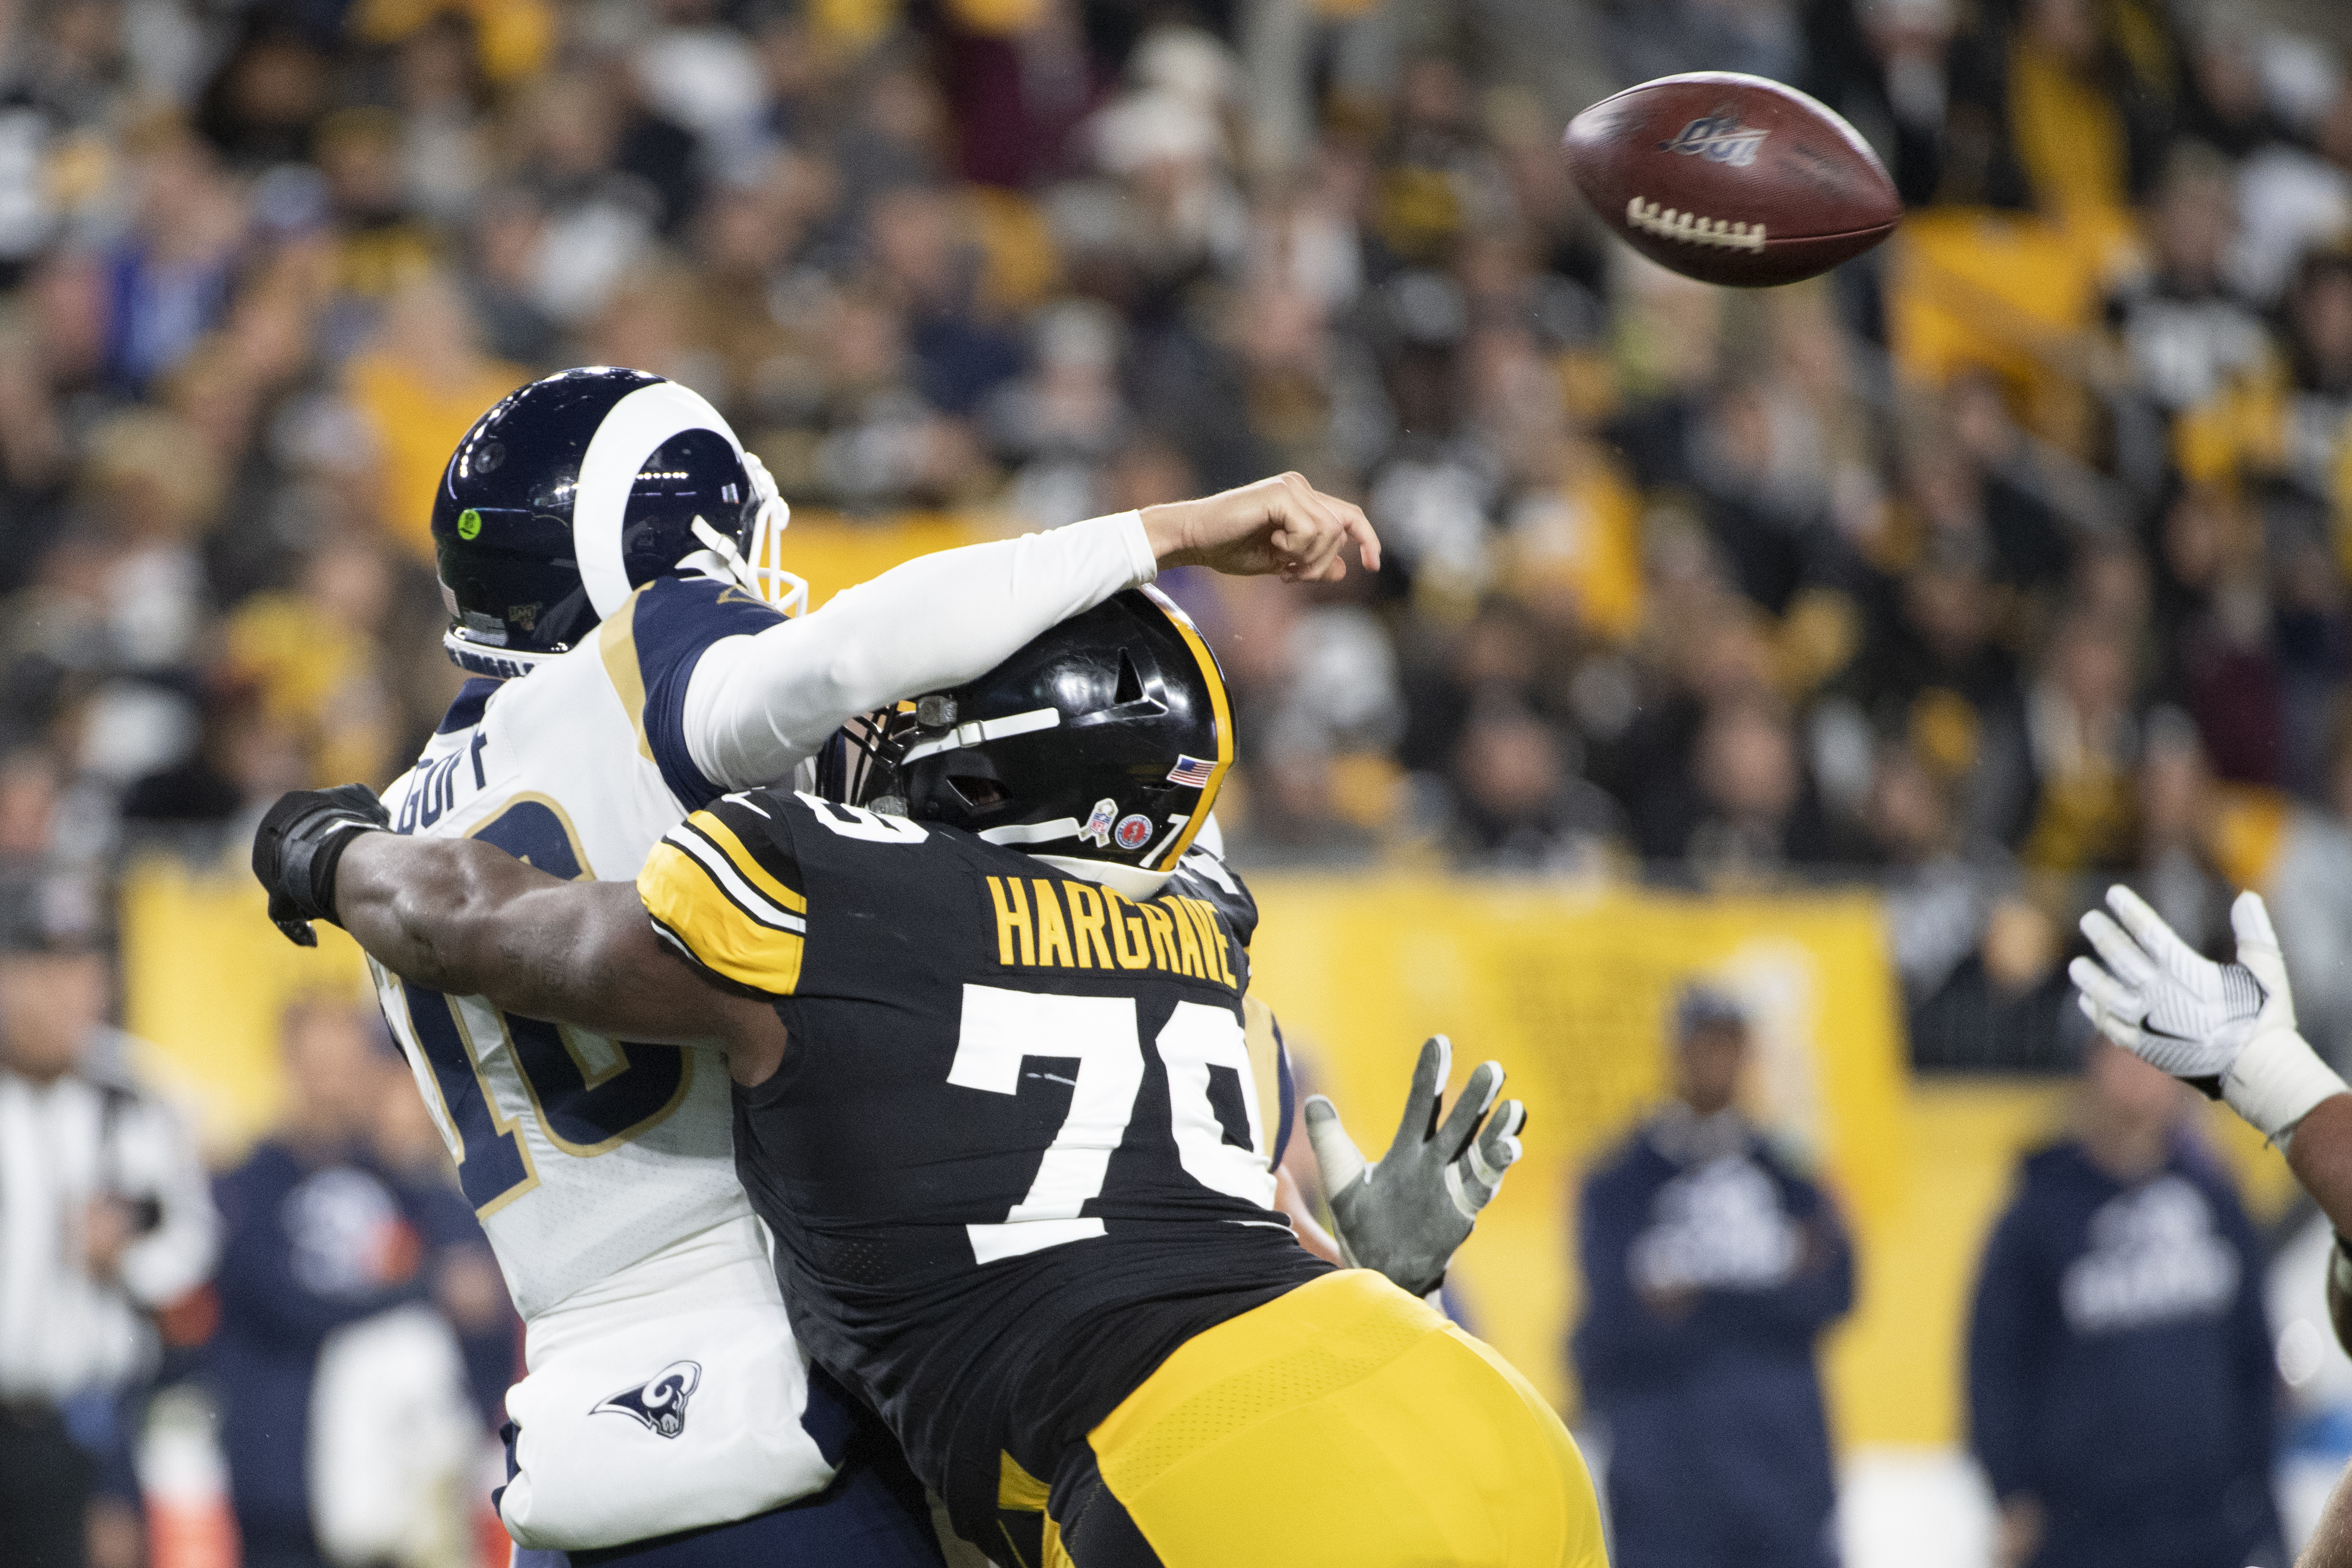 Pittsburgh Steelers nose tackle Javon Hargrave (79) causes a fumble by  Los Angeles Rams quarterback Jared Goff (16) that was returned for a touchdown in the second quarter at Heinz Field on Sunday, Nov. 10, 2019 in Pittsburgh. Barry Reeger   Special to PennLive